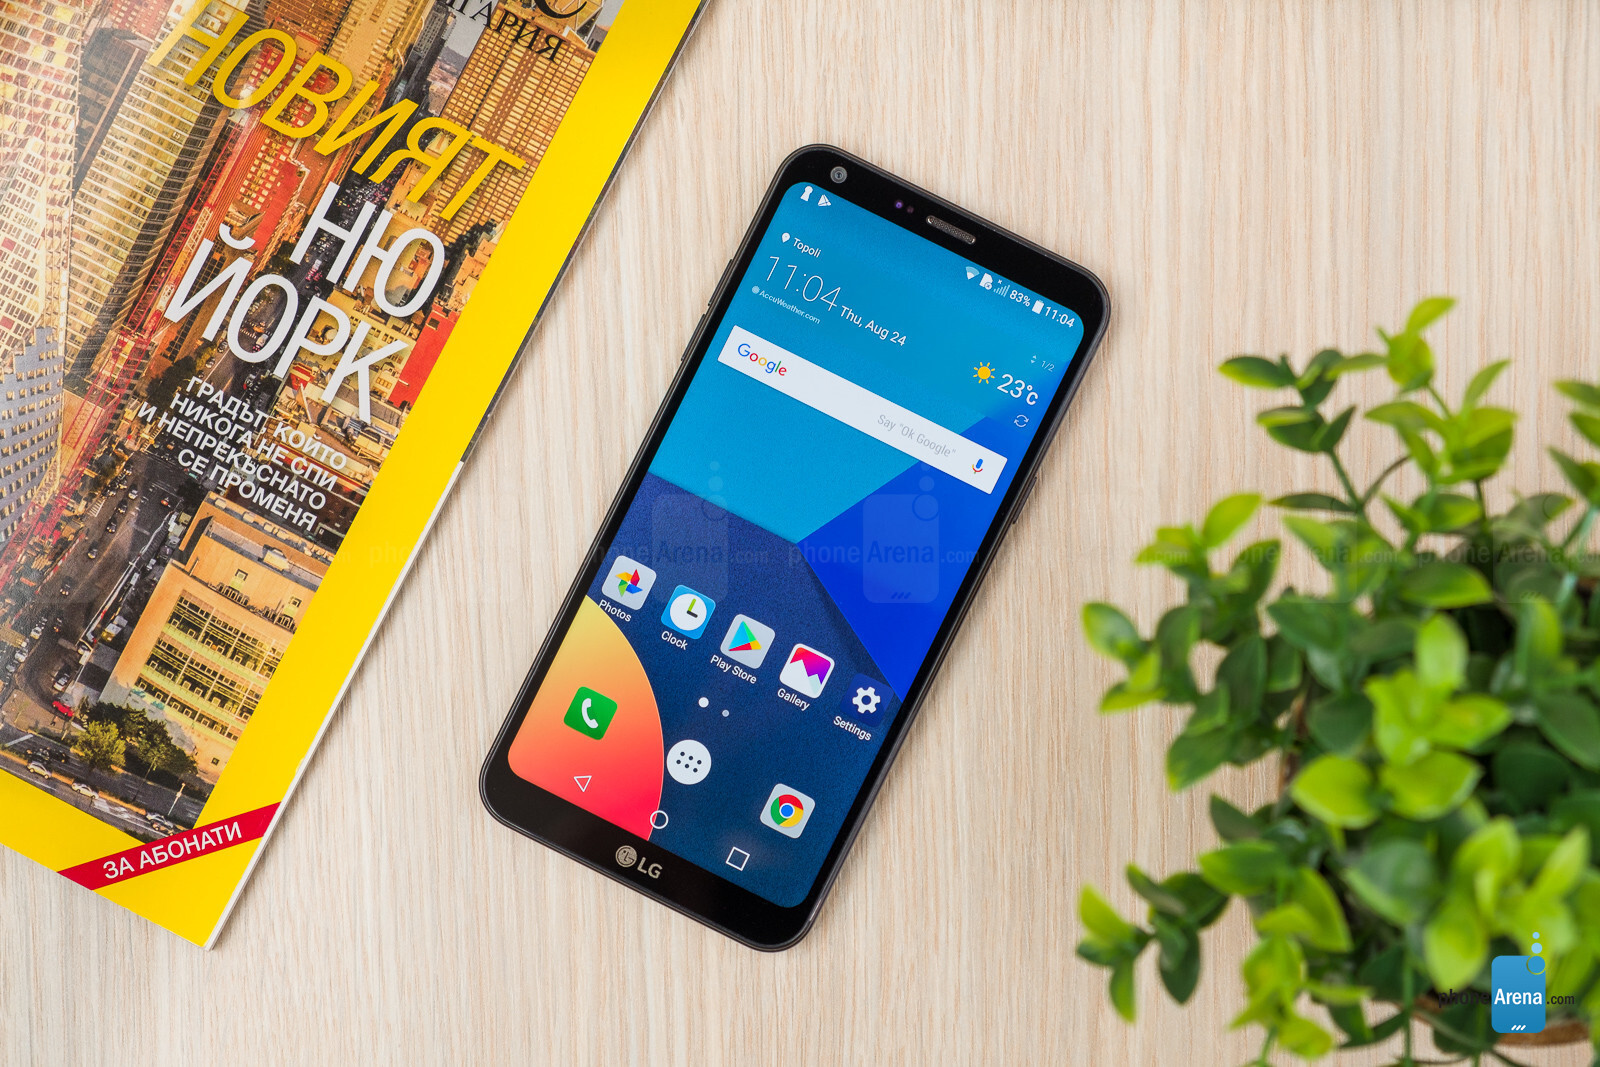 The Best Lg Phones You Can Buy In 2017 High End Midrange